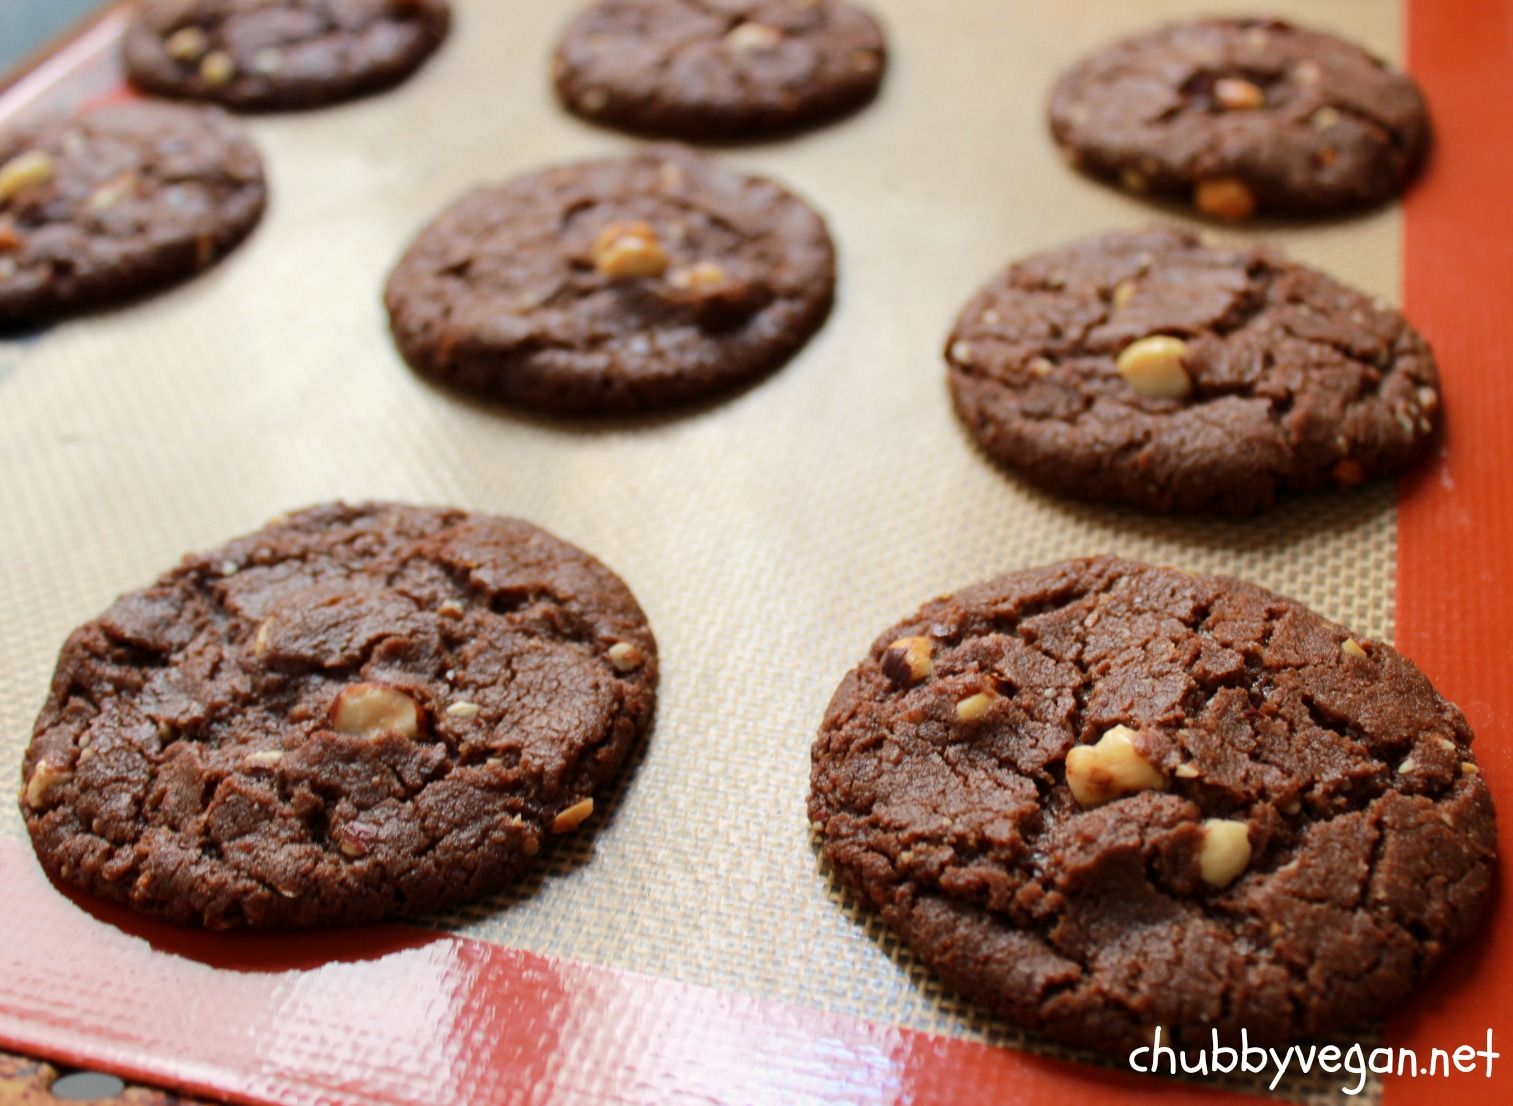 Cookie-de-avelã-chubby-vegan